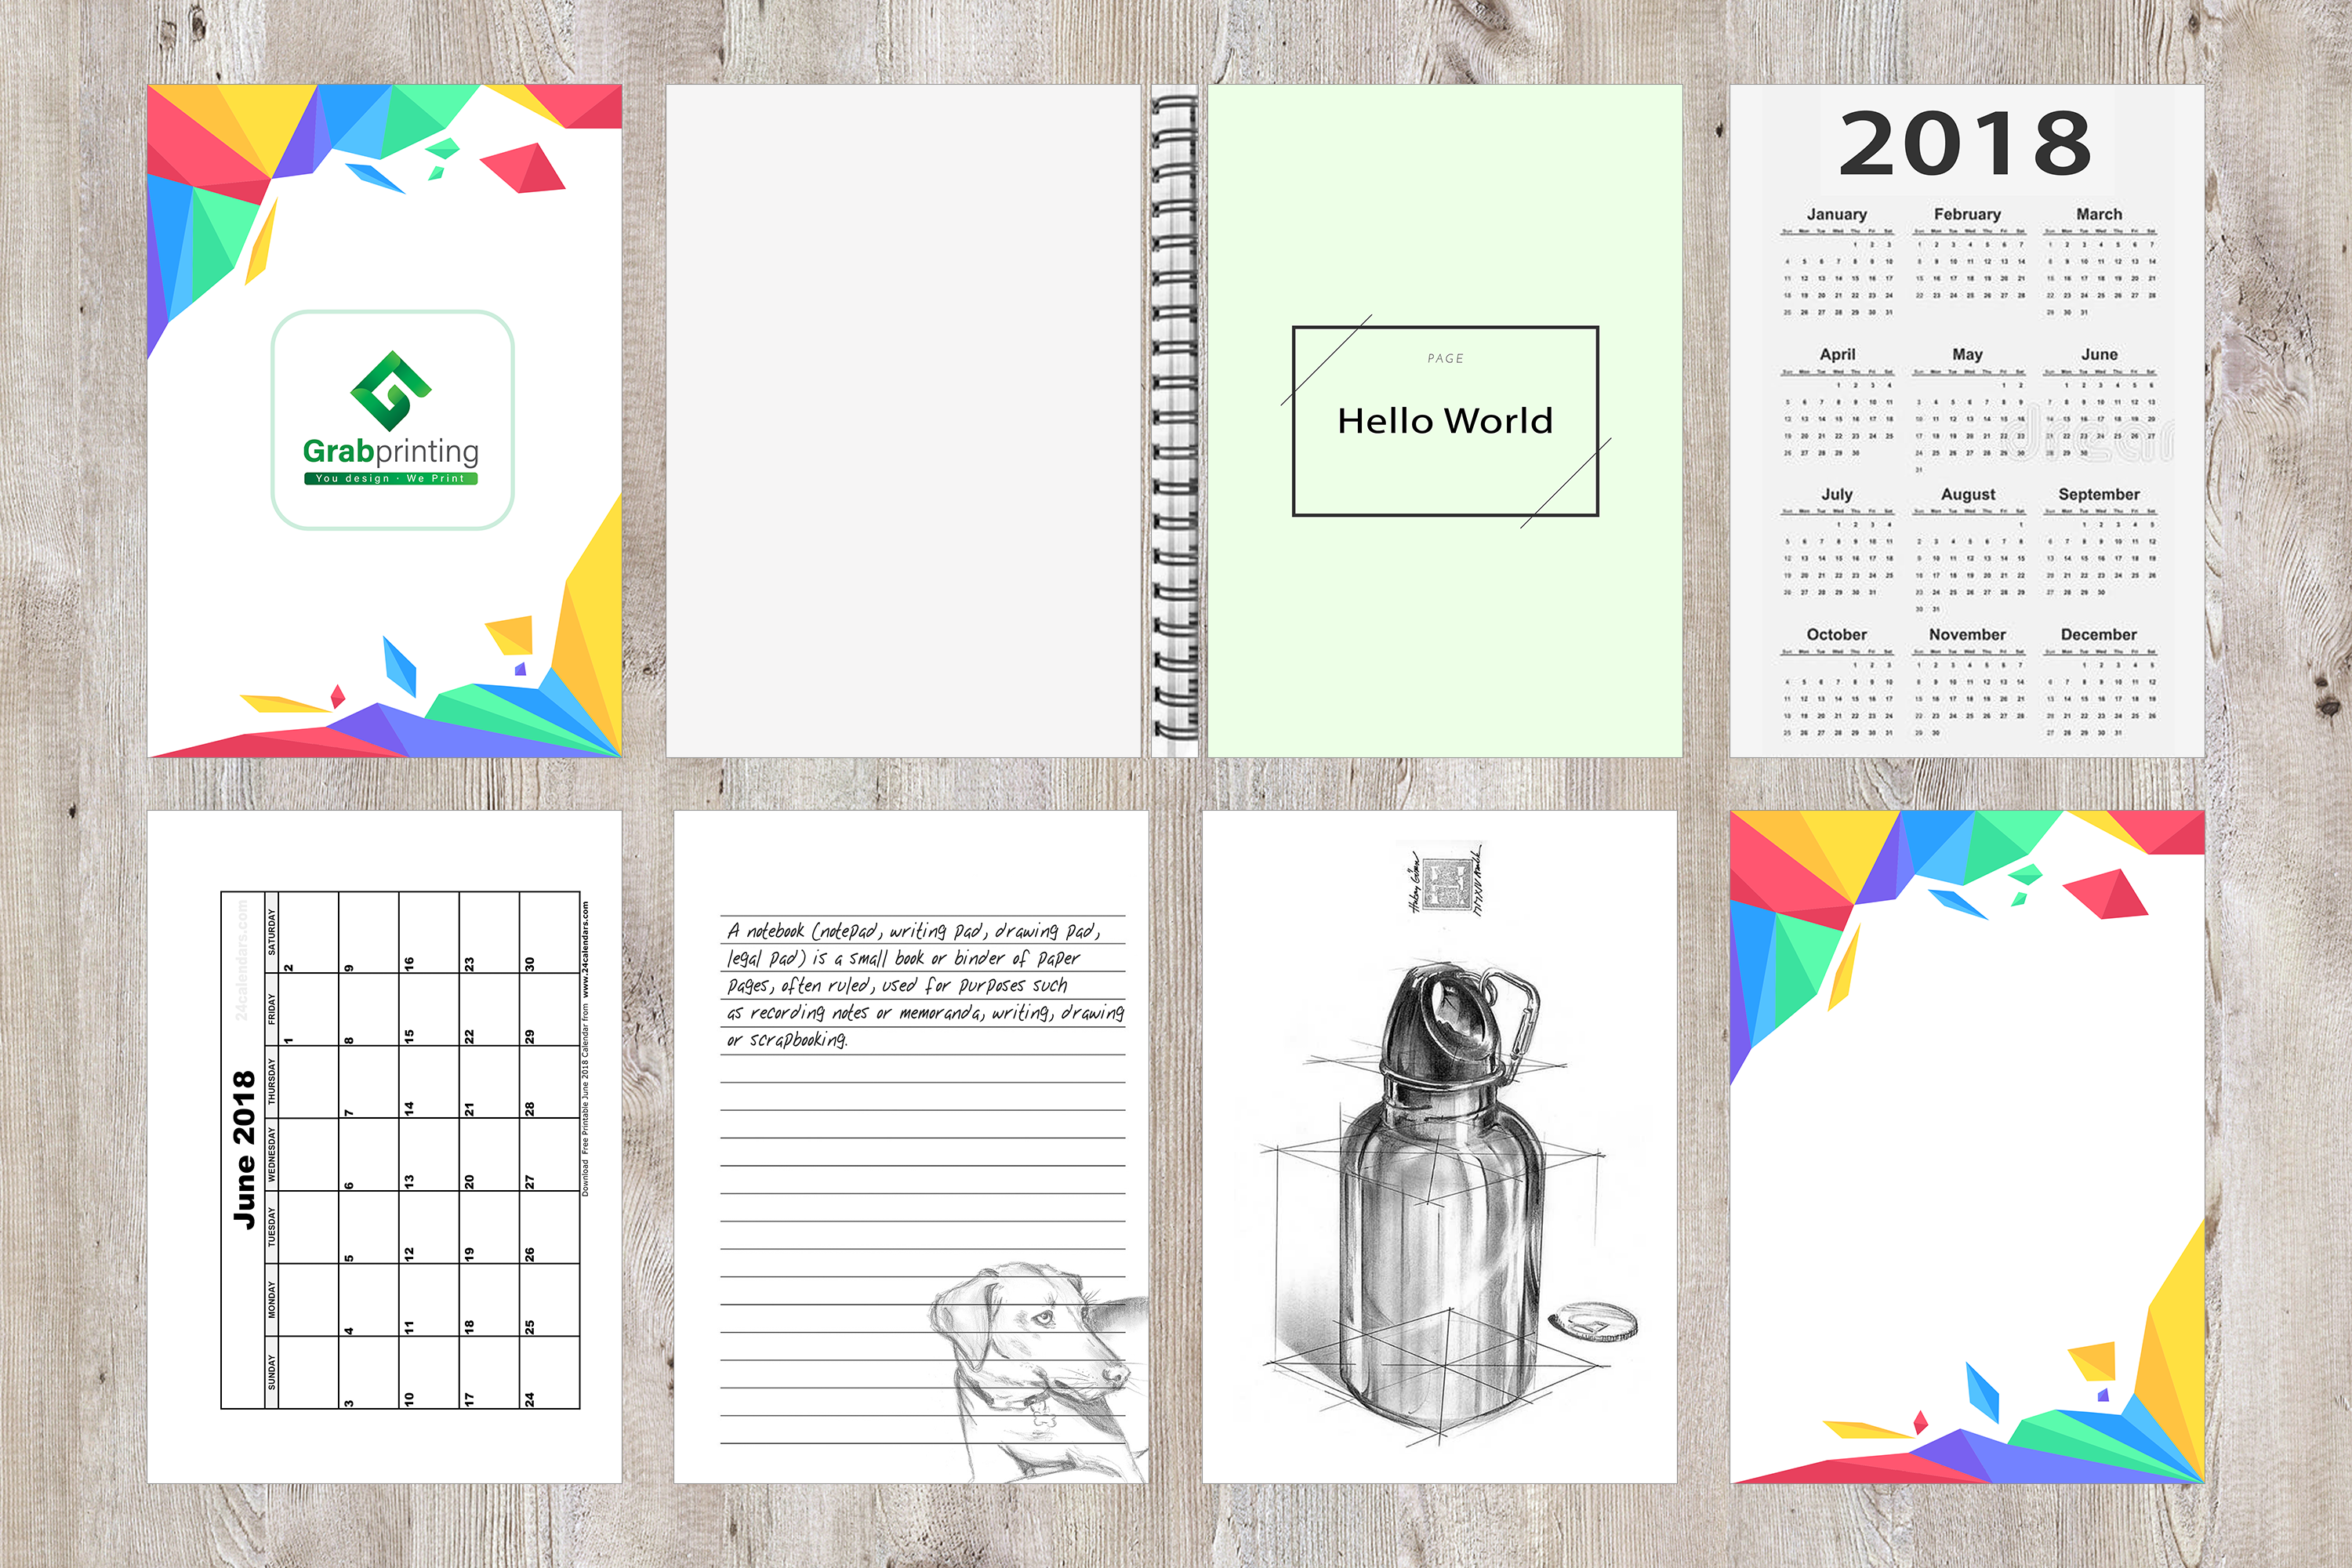 notebook printing Note Book Notebook printing content